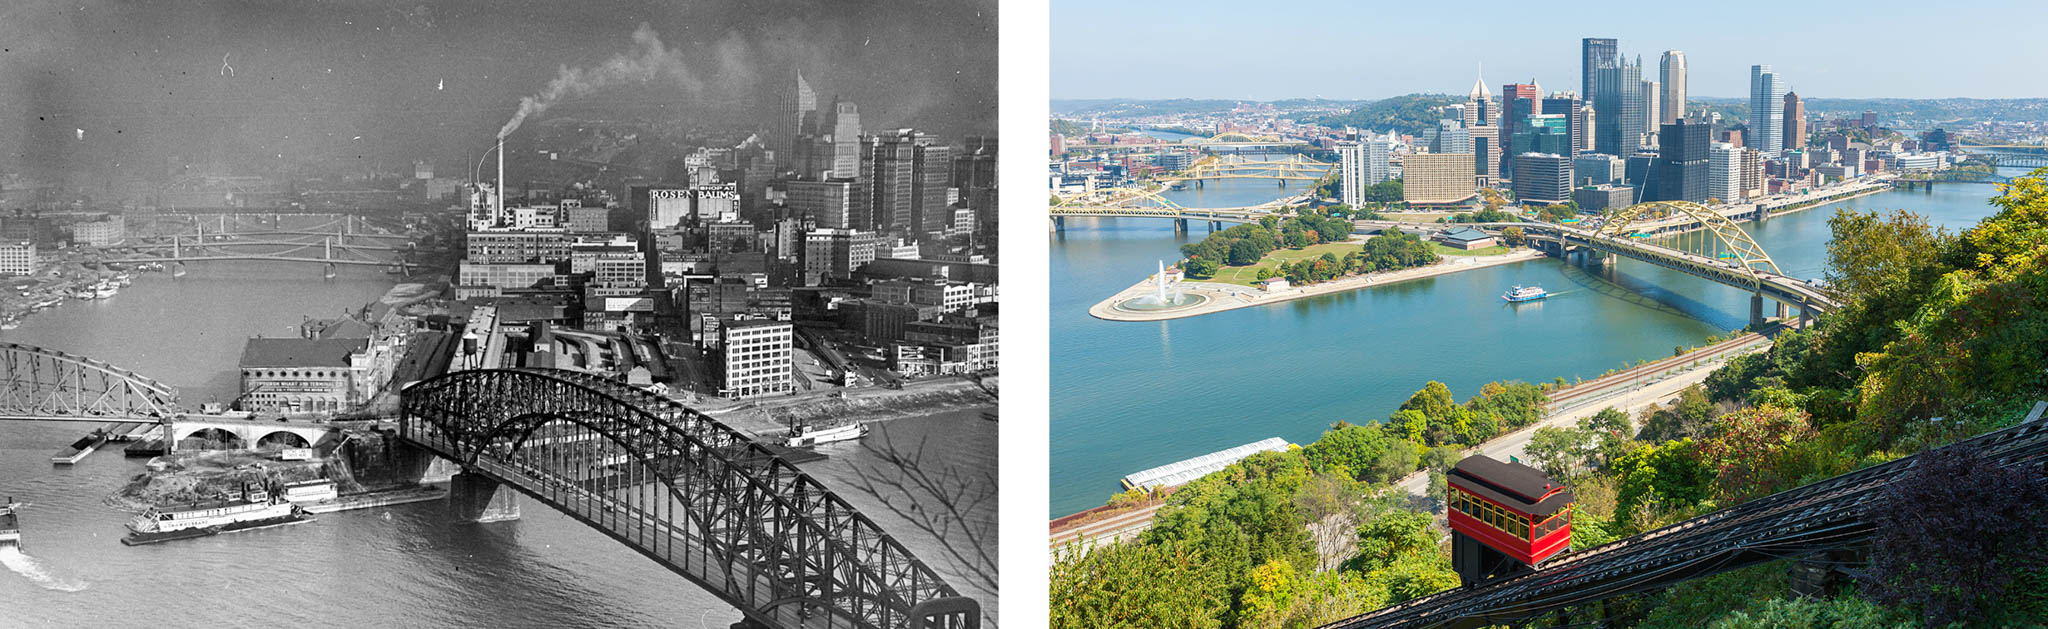 Black-and-white photo of smog-covered Pittsburgh and color photo of Pittsburgh with clean air (Left photo © Margaret Bourke-White/The LIFE Picture Collection/Getty Images. Right photo © Clarence Holmes Photography/Alamy)